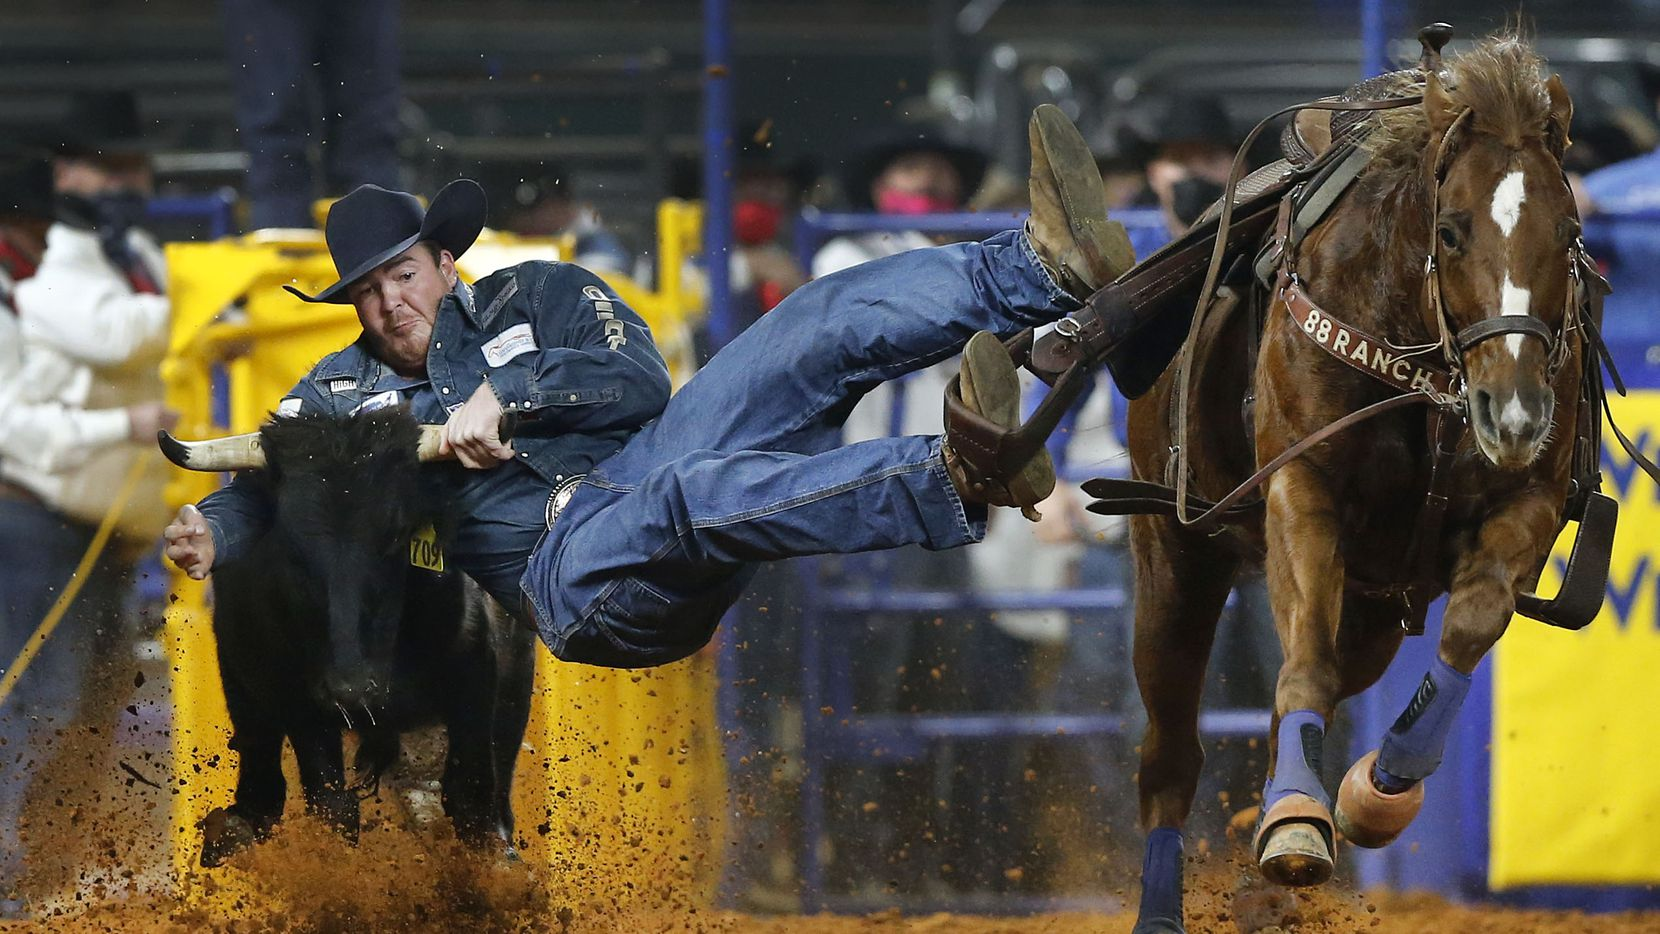 Steer wrestler Jacob Elder slides off his horse and turns a first place time during Round 10 of the National Finals Rodeo at Globe Life Field in Arlington, Saturday, December 12, 2020. Elder won the round and the all-around.